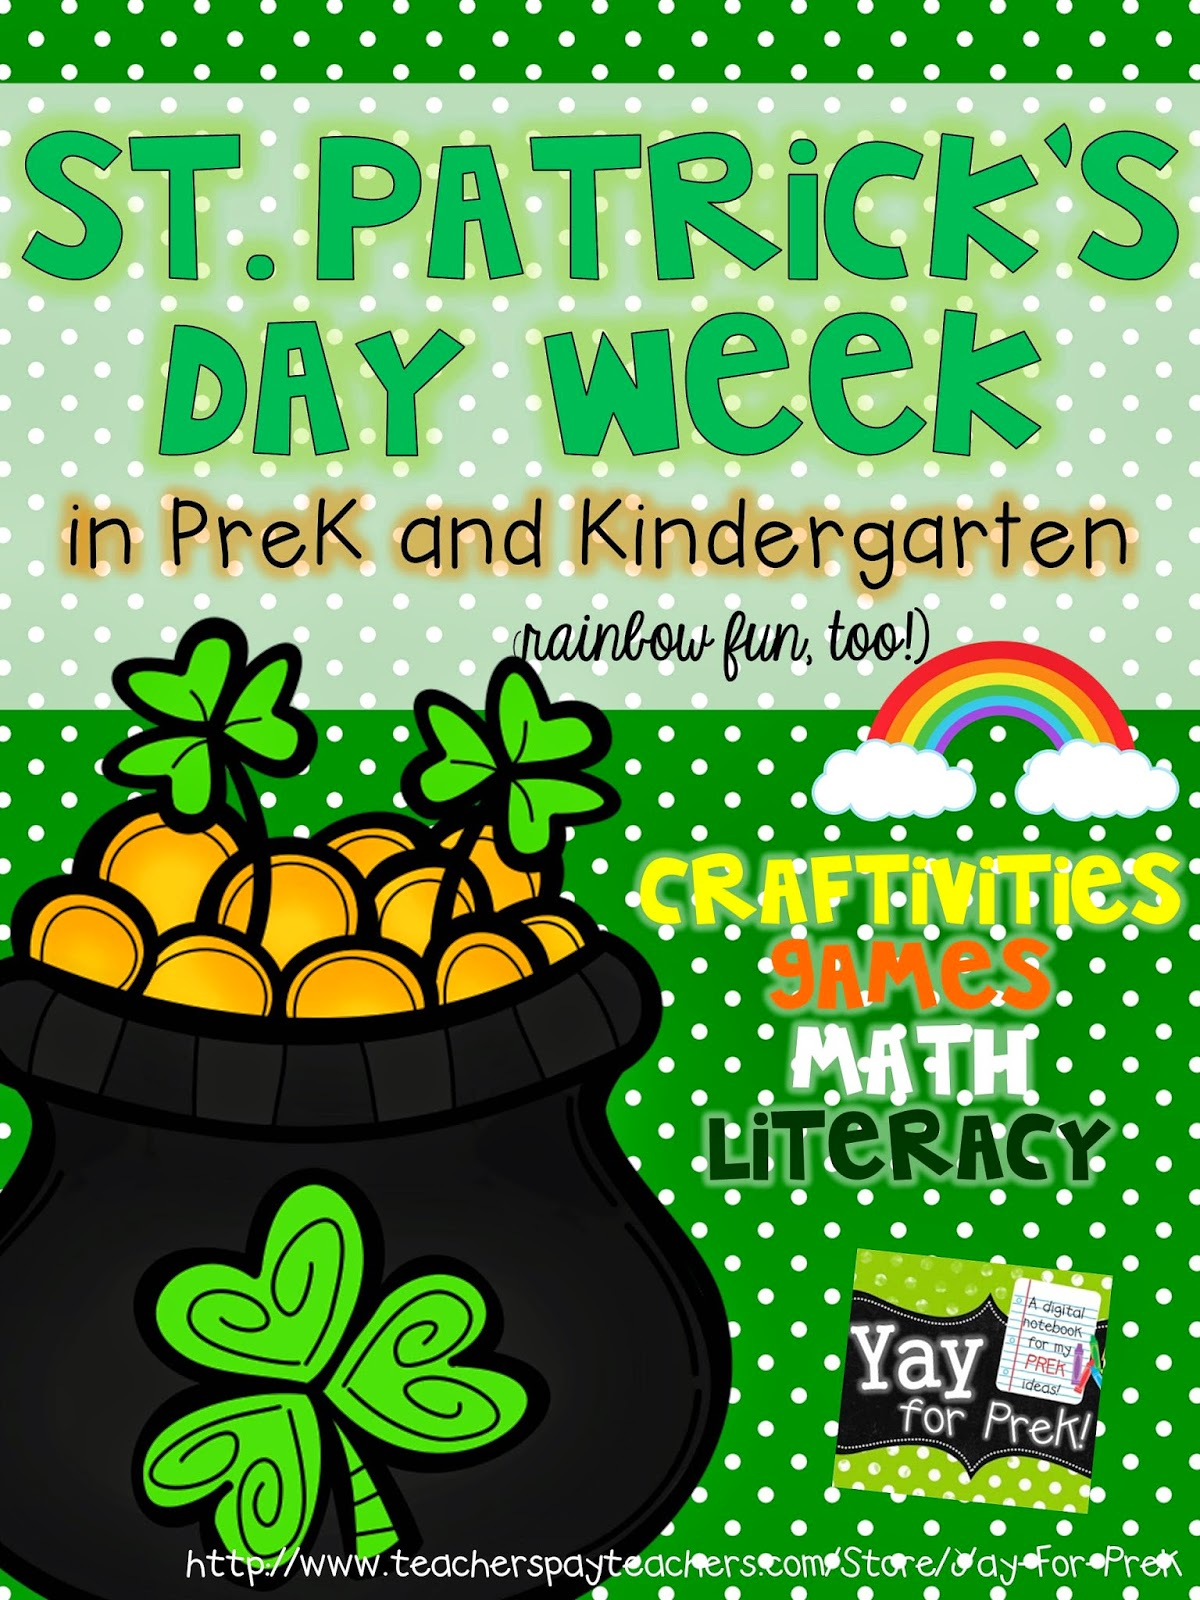 https://www.teacherspayteachers.com/Product/St-Patricks-Day-Week-in-PreK-and-Kindergarten-rainbow-fun-too-1136288